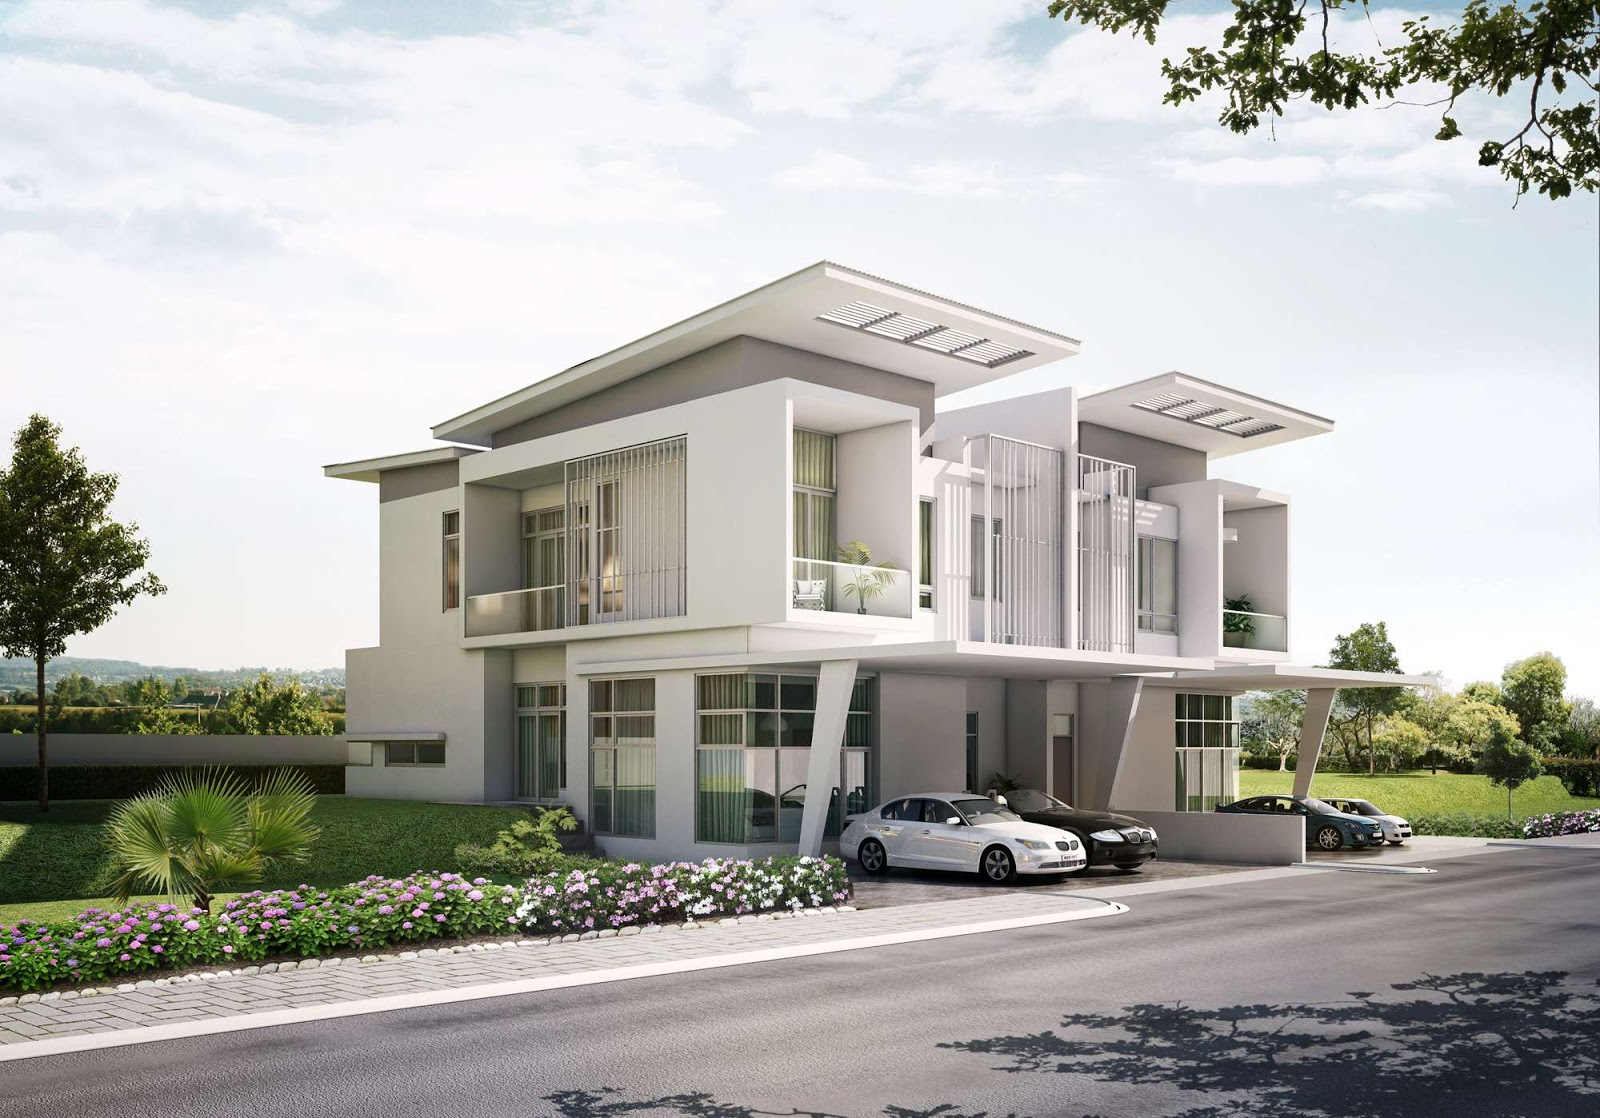 New home designs latest singapore modern homes exterior for Modern house design color